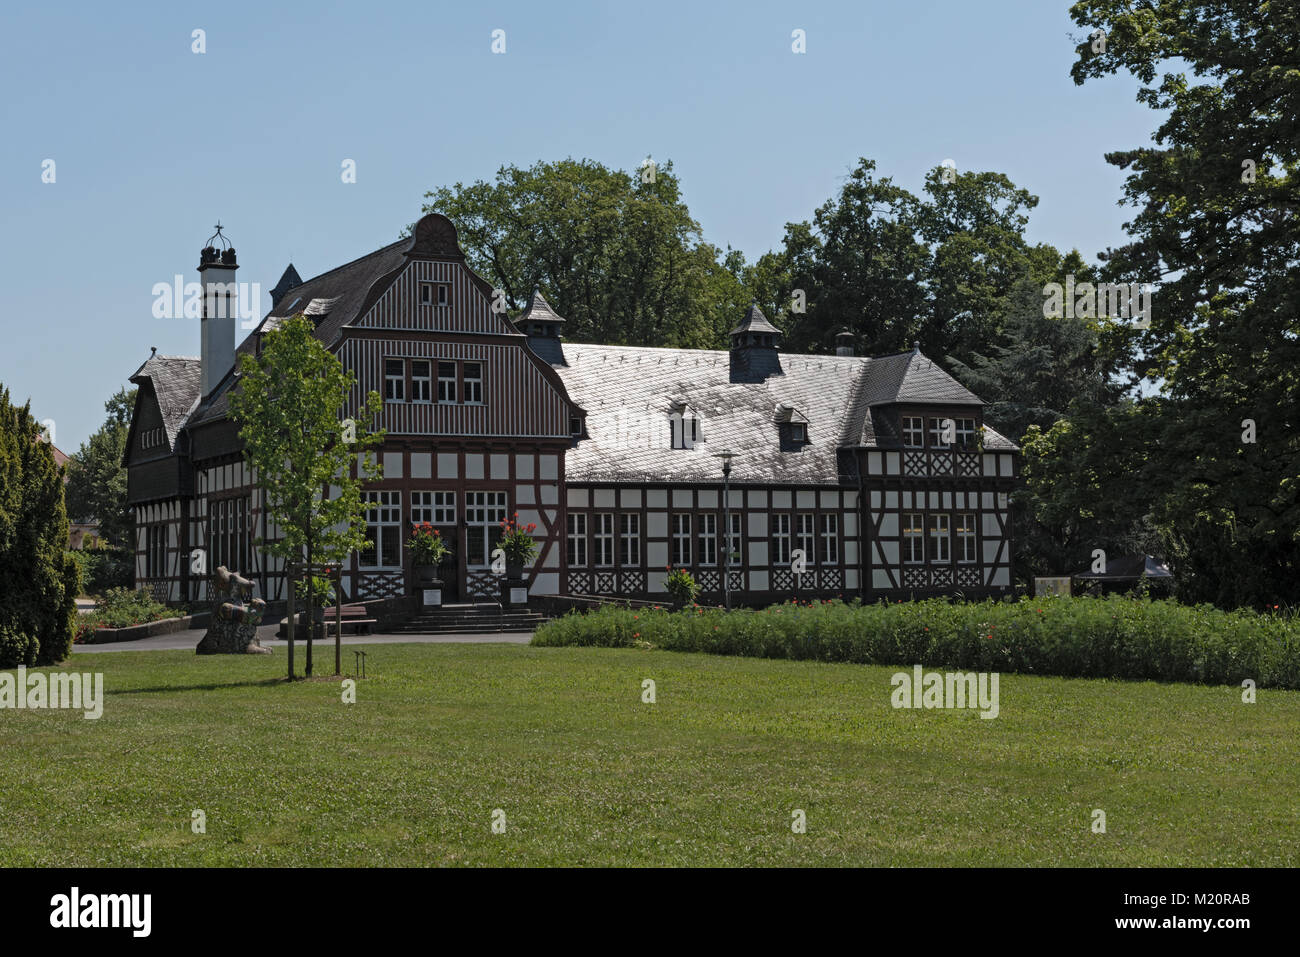 The house of the public library in the historical spa park Bad Nauheim, Hesse, Germany - Stock Image